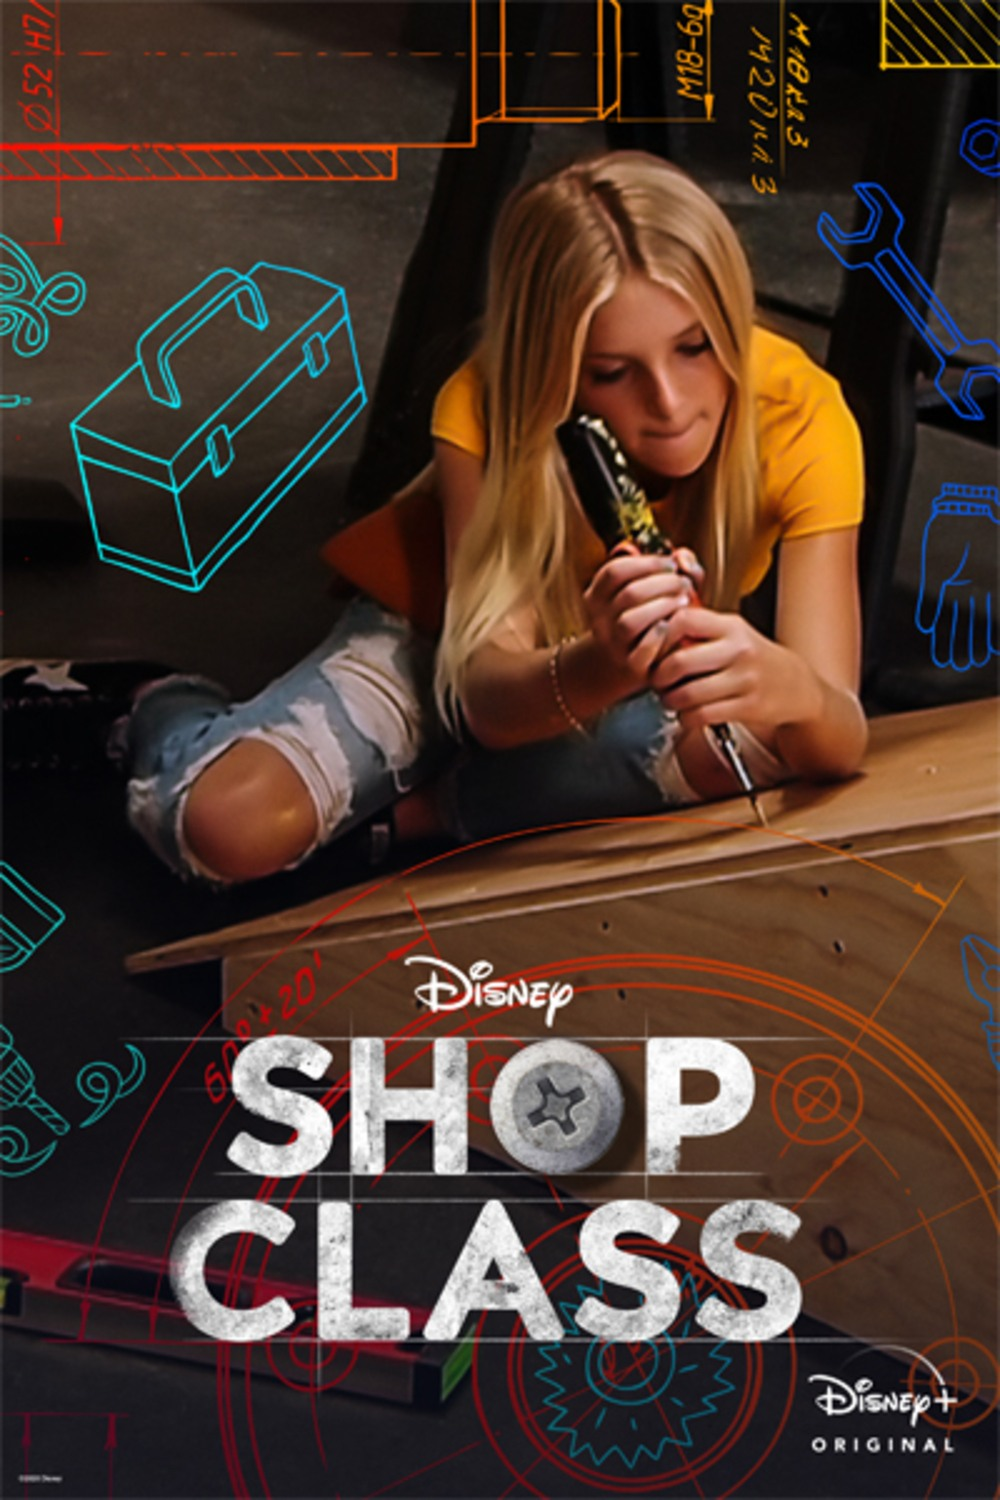 affiche poster atelier justin shop class disney plus